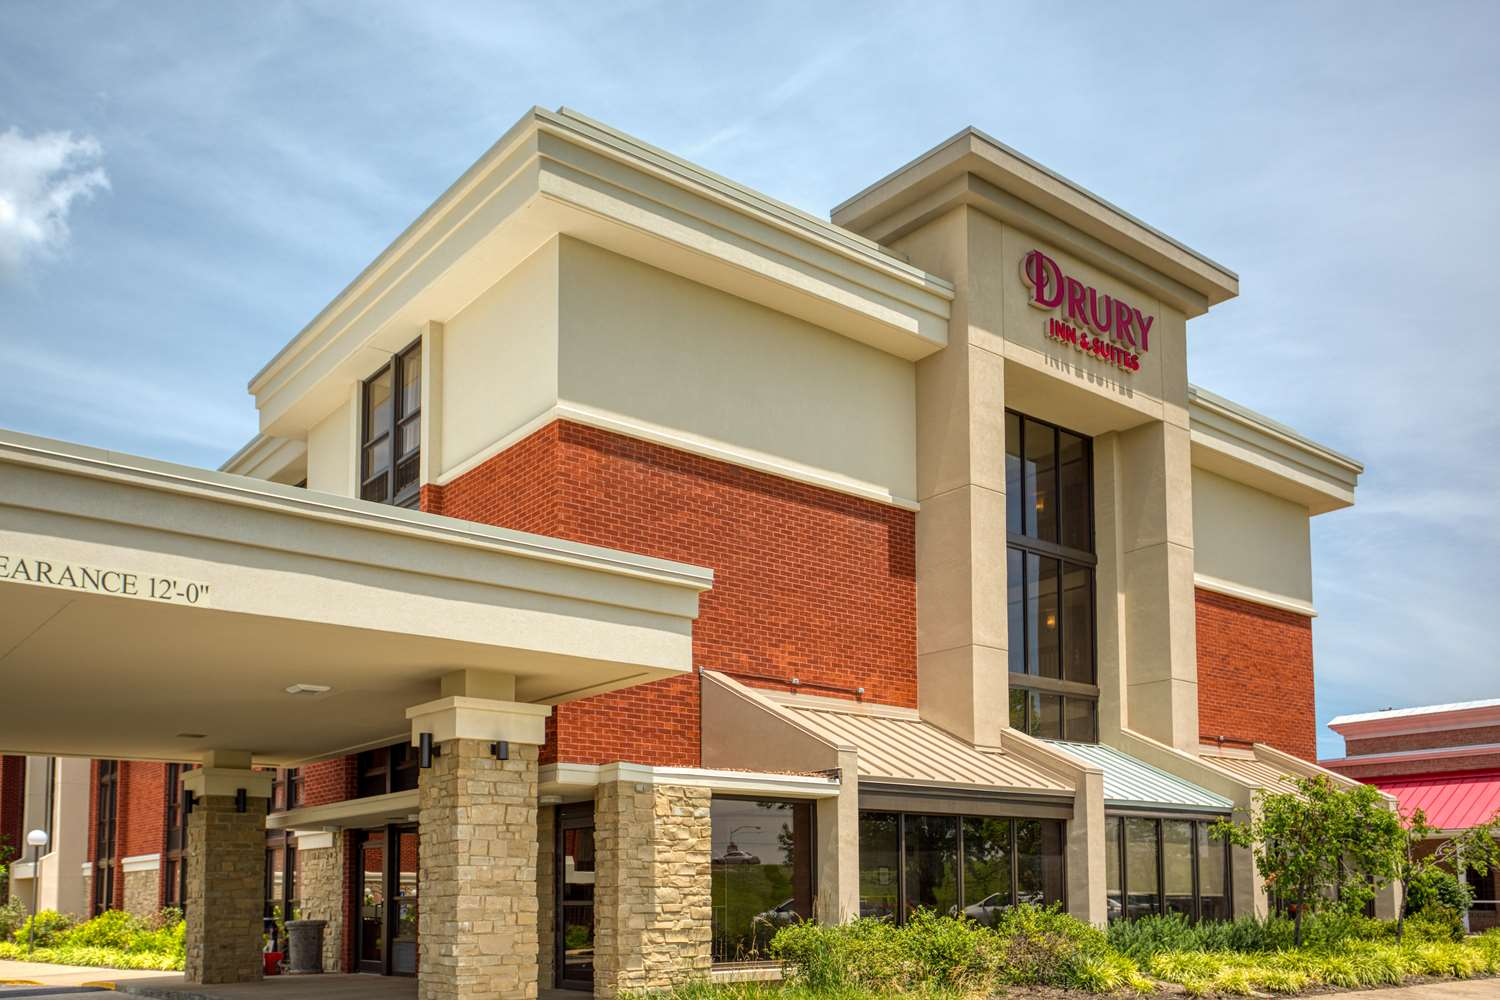 Exterior view - Drury Inn & Suites Fairview Heights